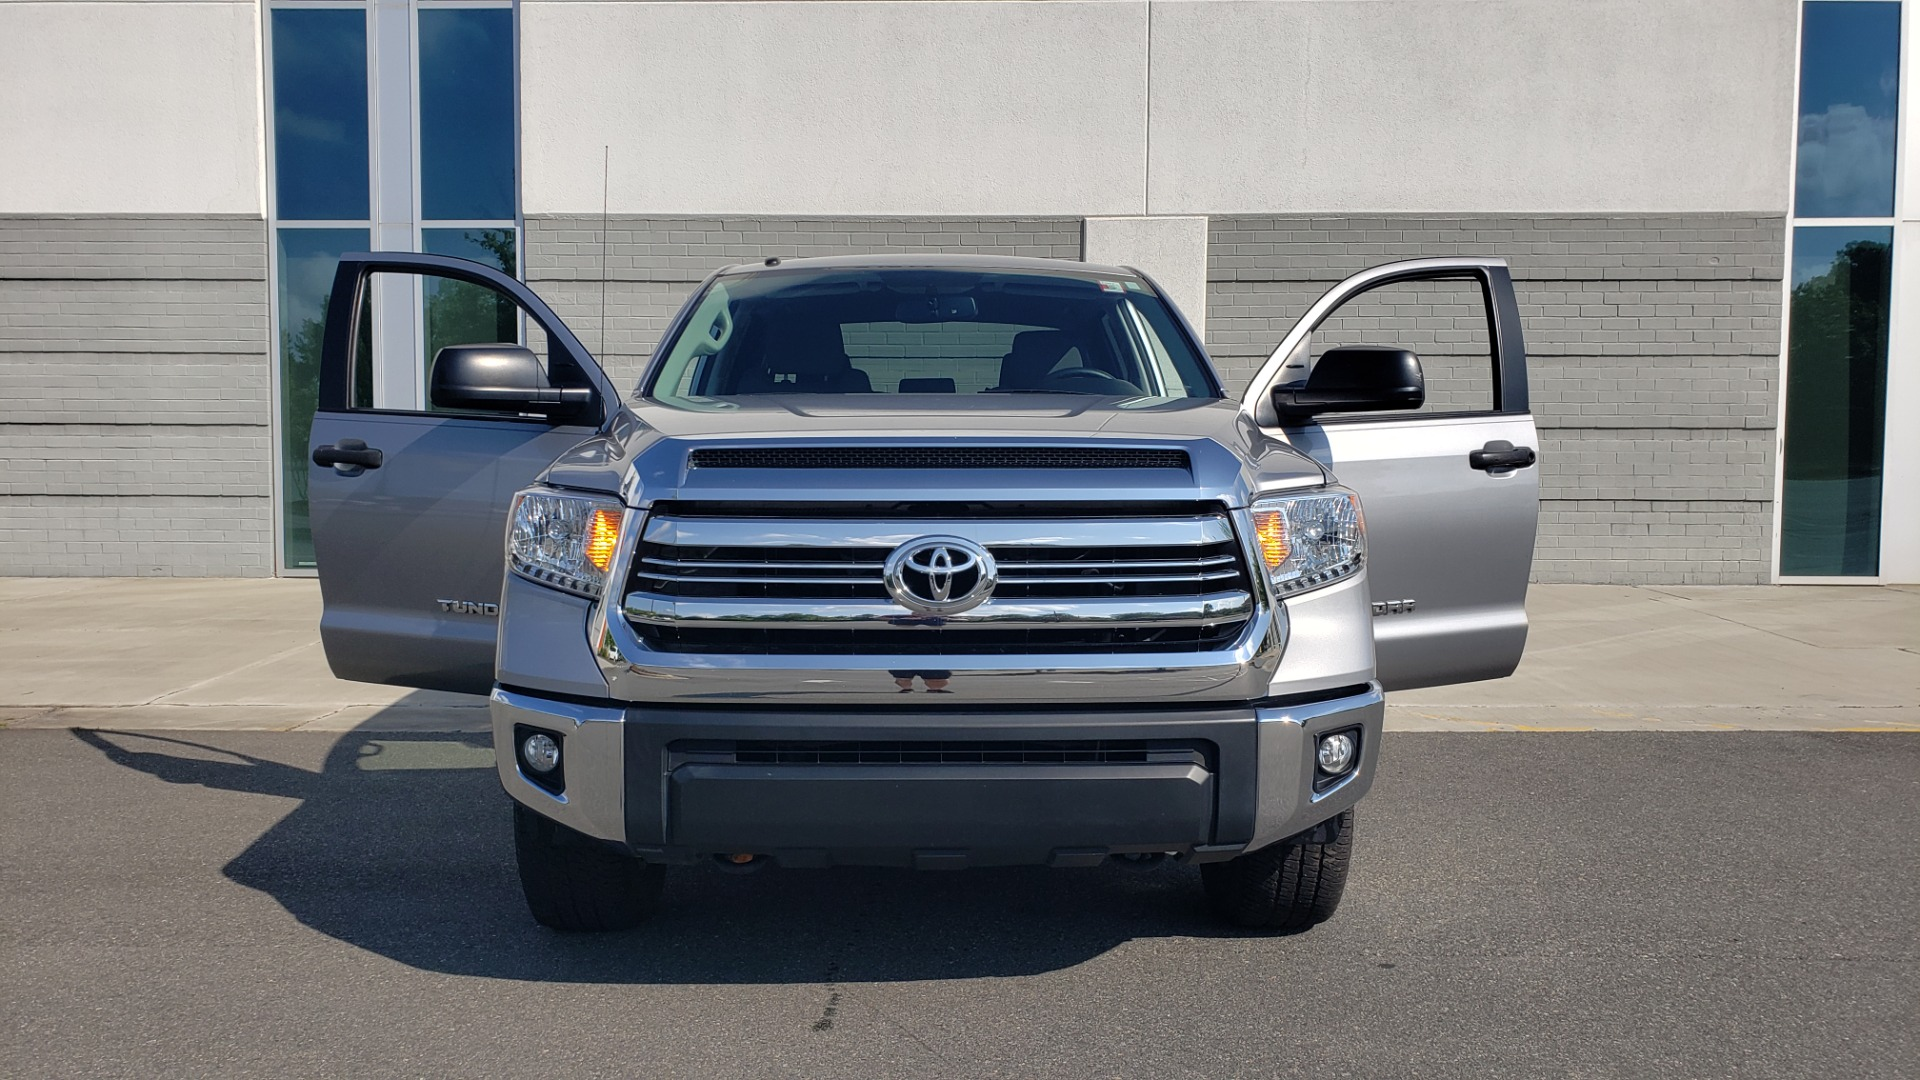 Used 2017 Toyota TUNDRA 4WD SR5 CREWMAX / 5.7L V8 / 6-SPD AUTO / NAV / REARVIEW for sale $44,395 at Formula Imports in Charlotte NC 28227 22